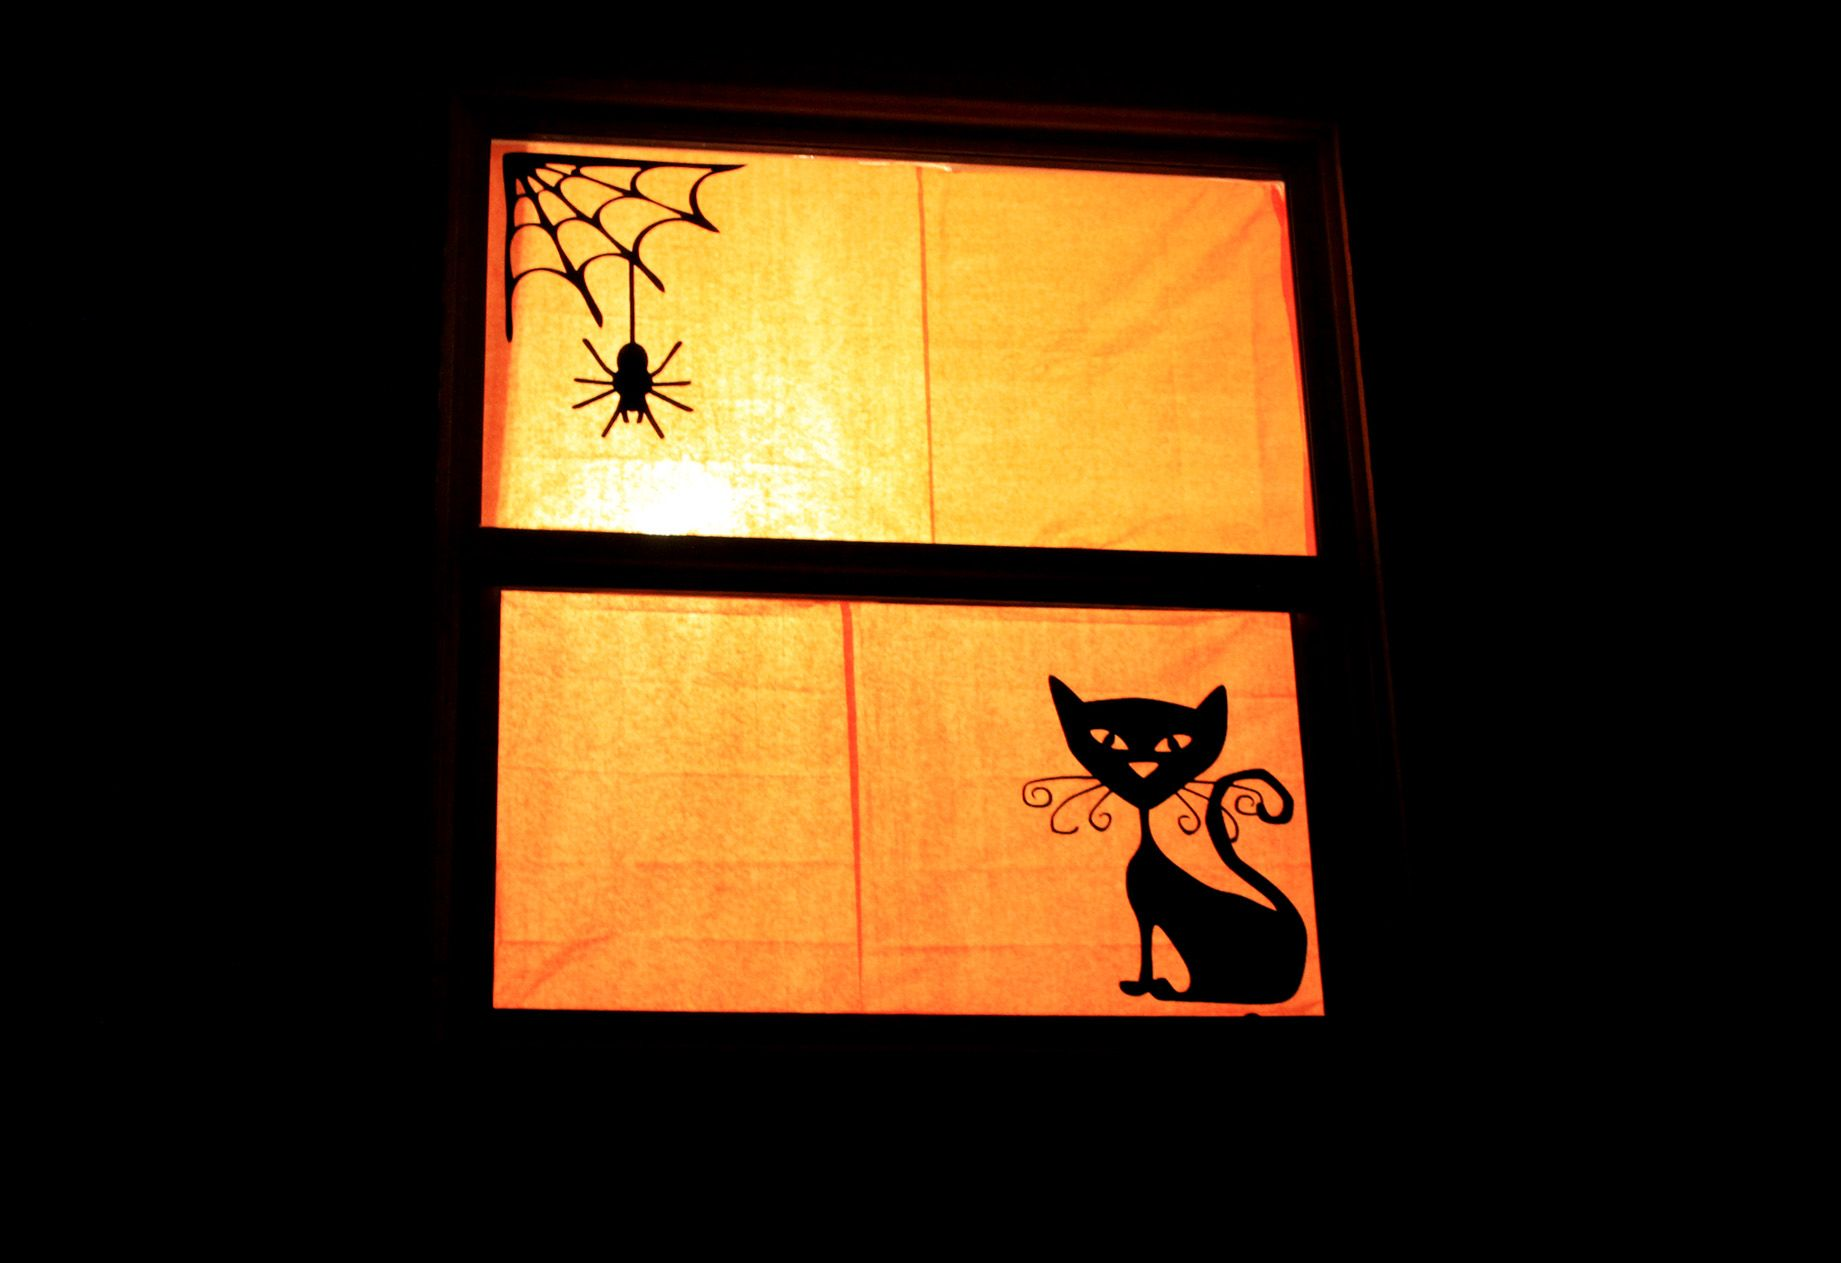 Halloween Silhouette Windows - Who Arted? halloweenie Pinterest - Window Halloween Decorations